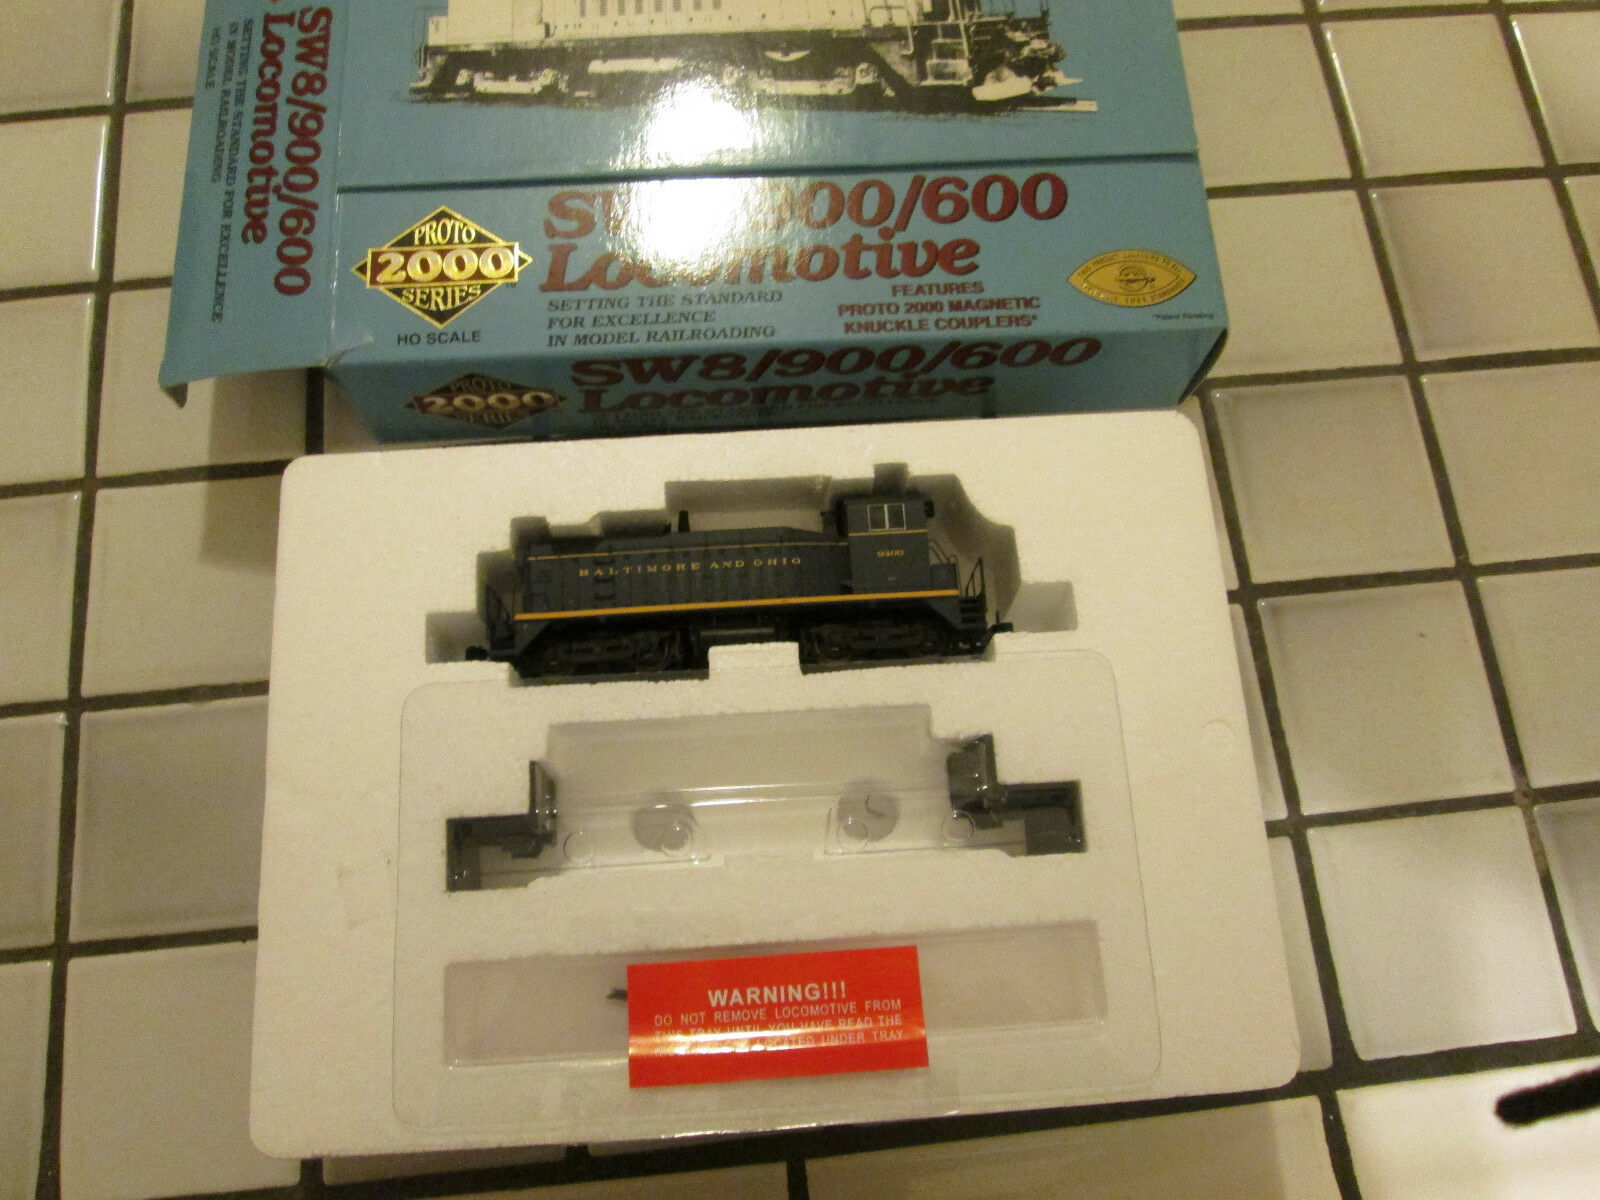 Predo 2000 BALTIMORE AND OHIO SW8 900 600 powered switch engine HO scale